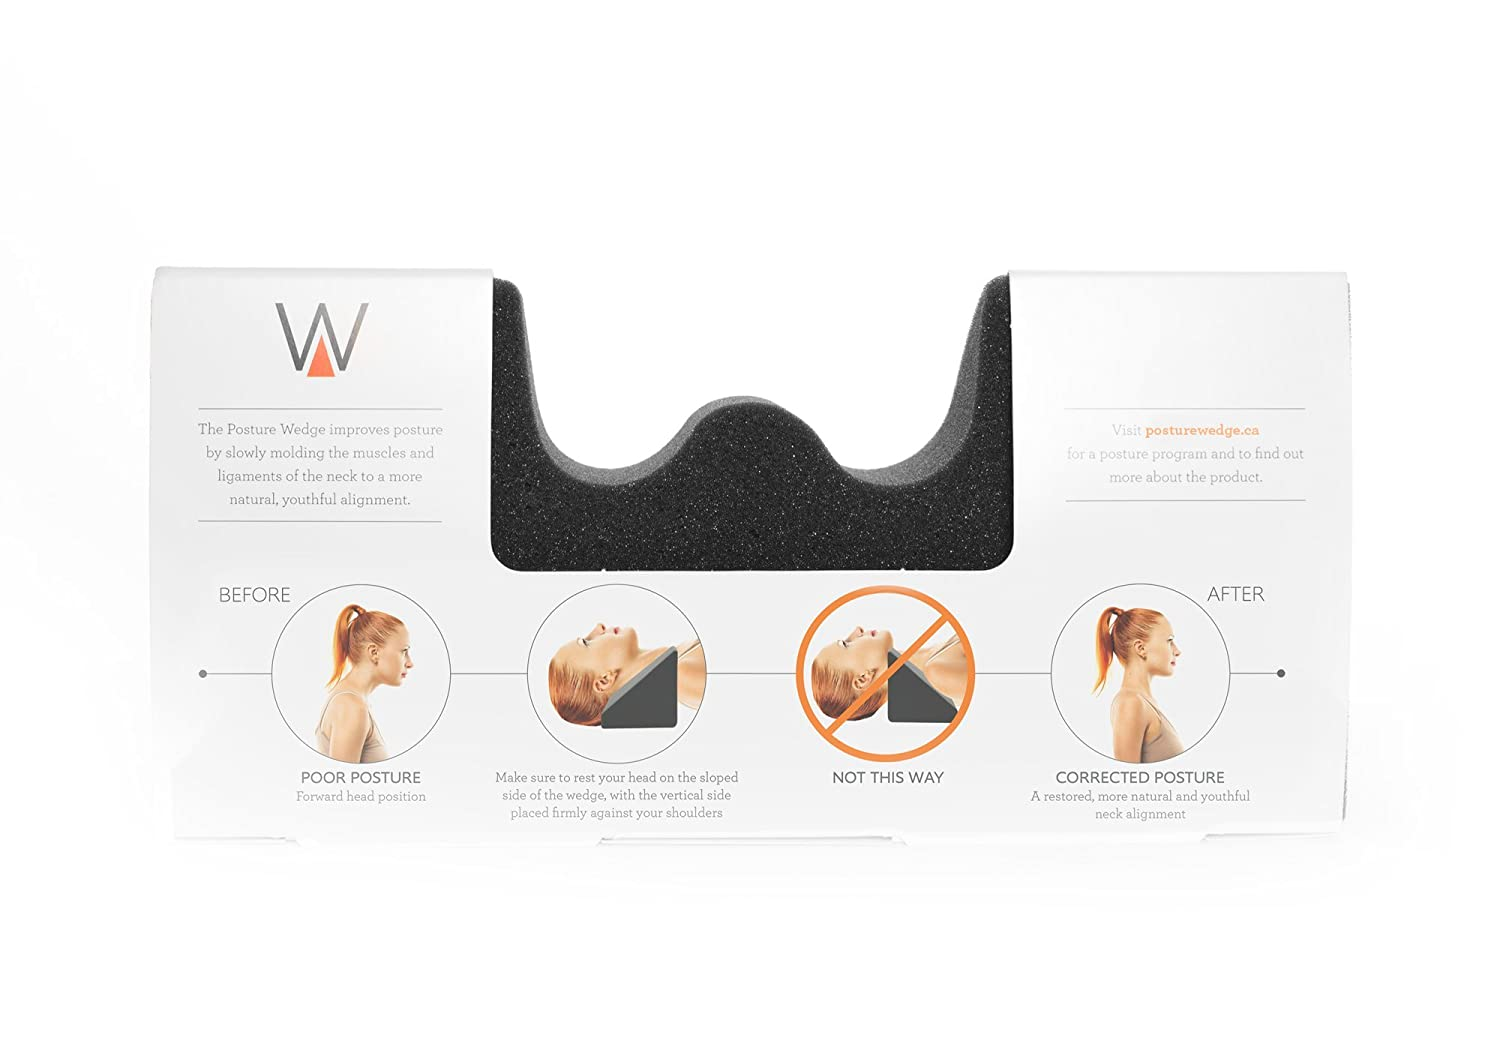 Posture Correction Device The Posture Wedge Fix Your Posture With Just 10 Minutes Of Use Per Day Spine Line Inc.